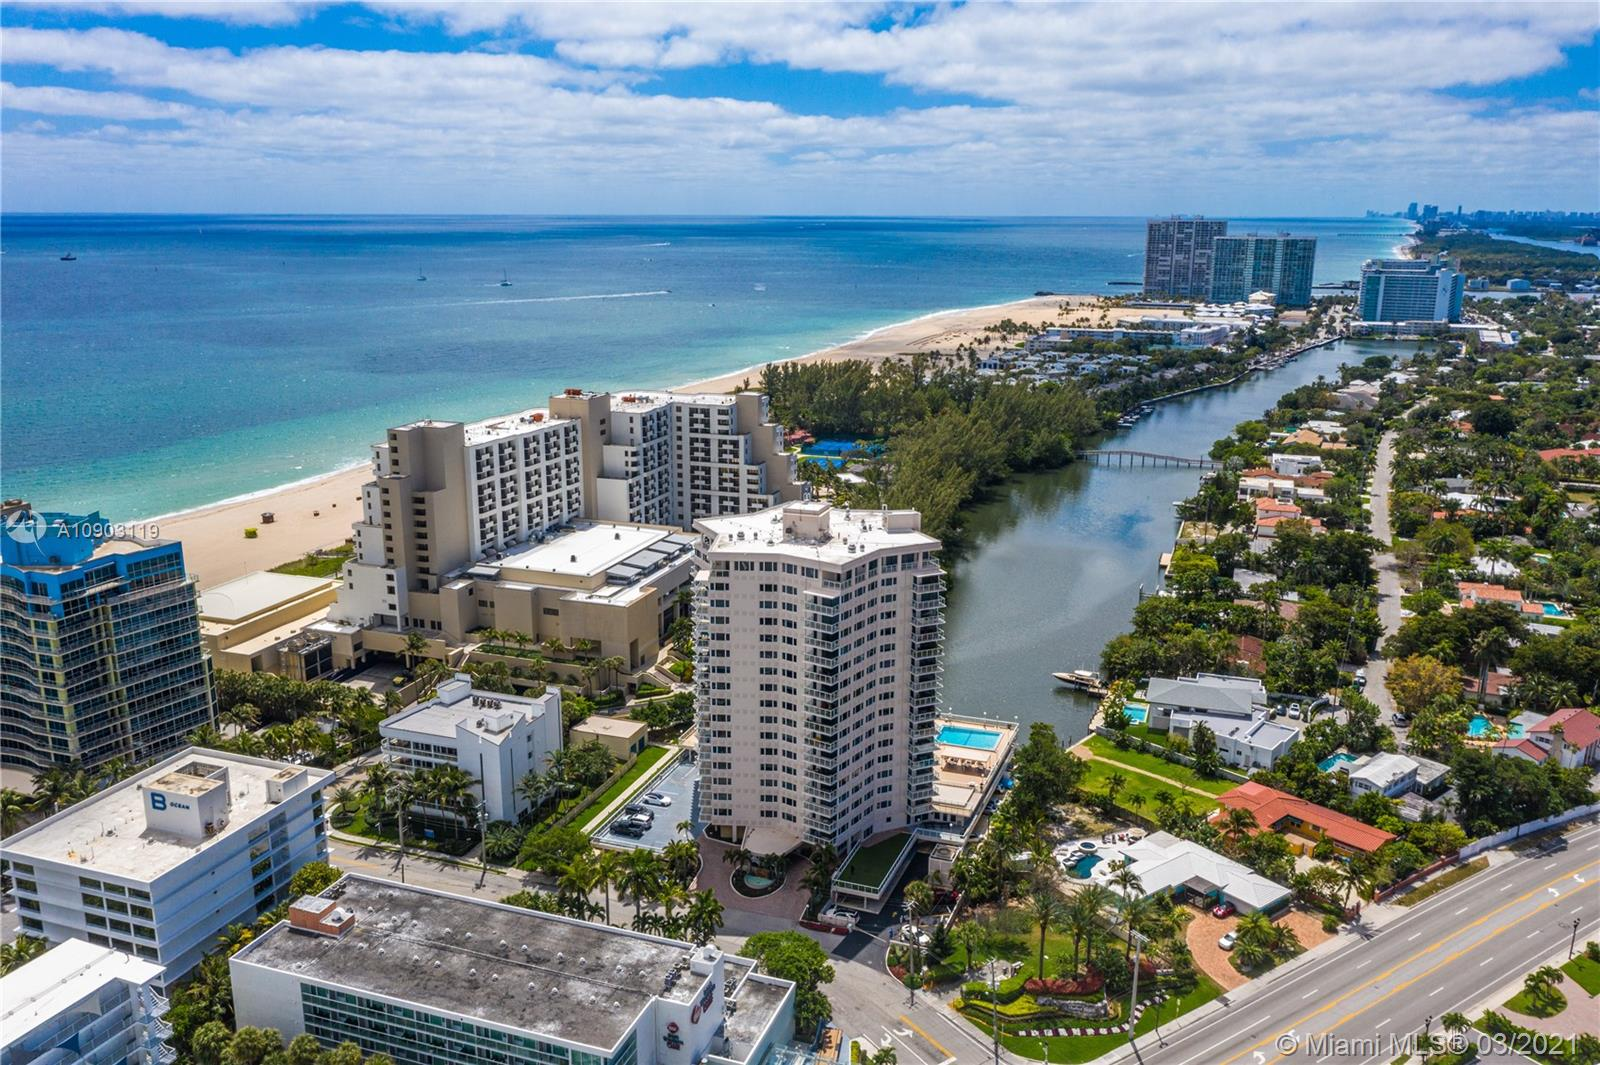 Just Reduced:  Enjoy everything Fort Lauderdale Beach has to offer in this beautifully renovated 2 bedroom, 2 bathroom condo east of A1A and a short walk to the beach.  Spacious, 1609 square foot southwest corner unit with views of the Intracoastal and Lake Mayan.  Building amenities include a large pool area, covered parking, community room and a gym featuring a Peloton.  Large impact windows bring the views to every room.